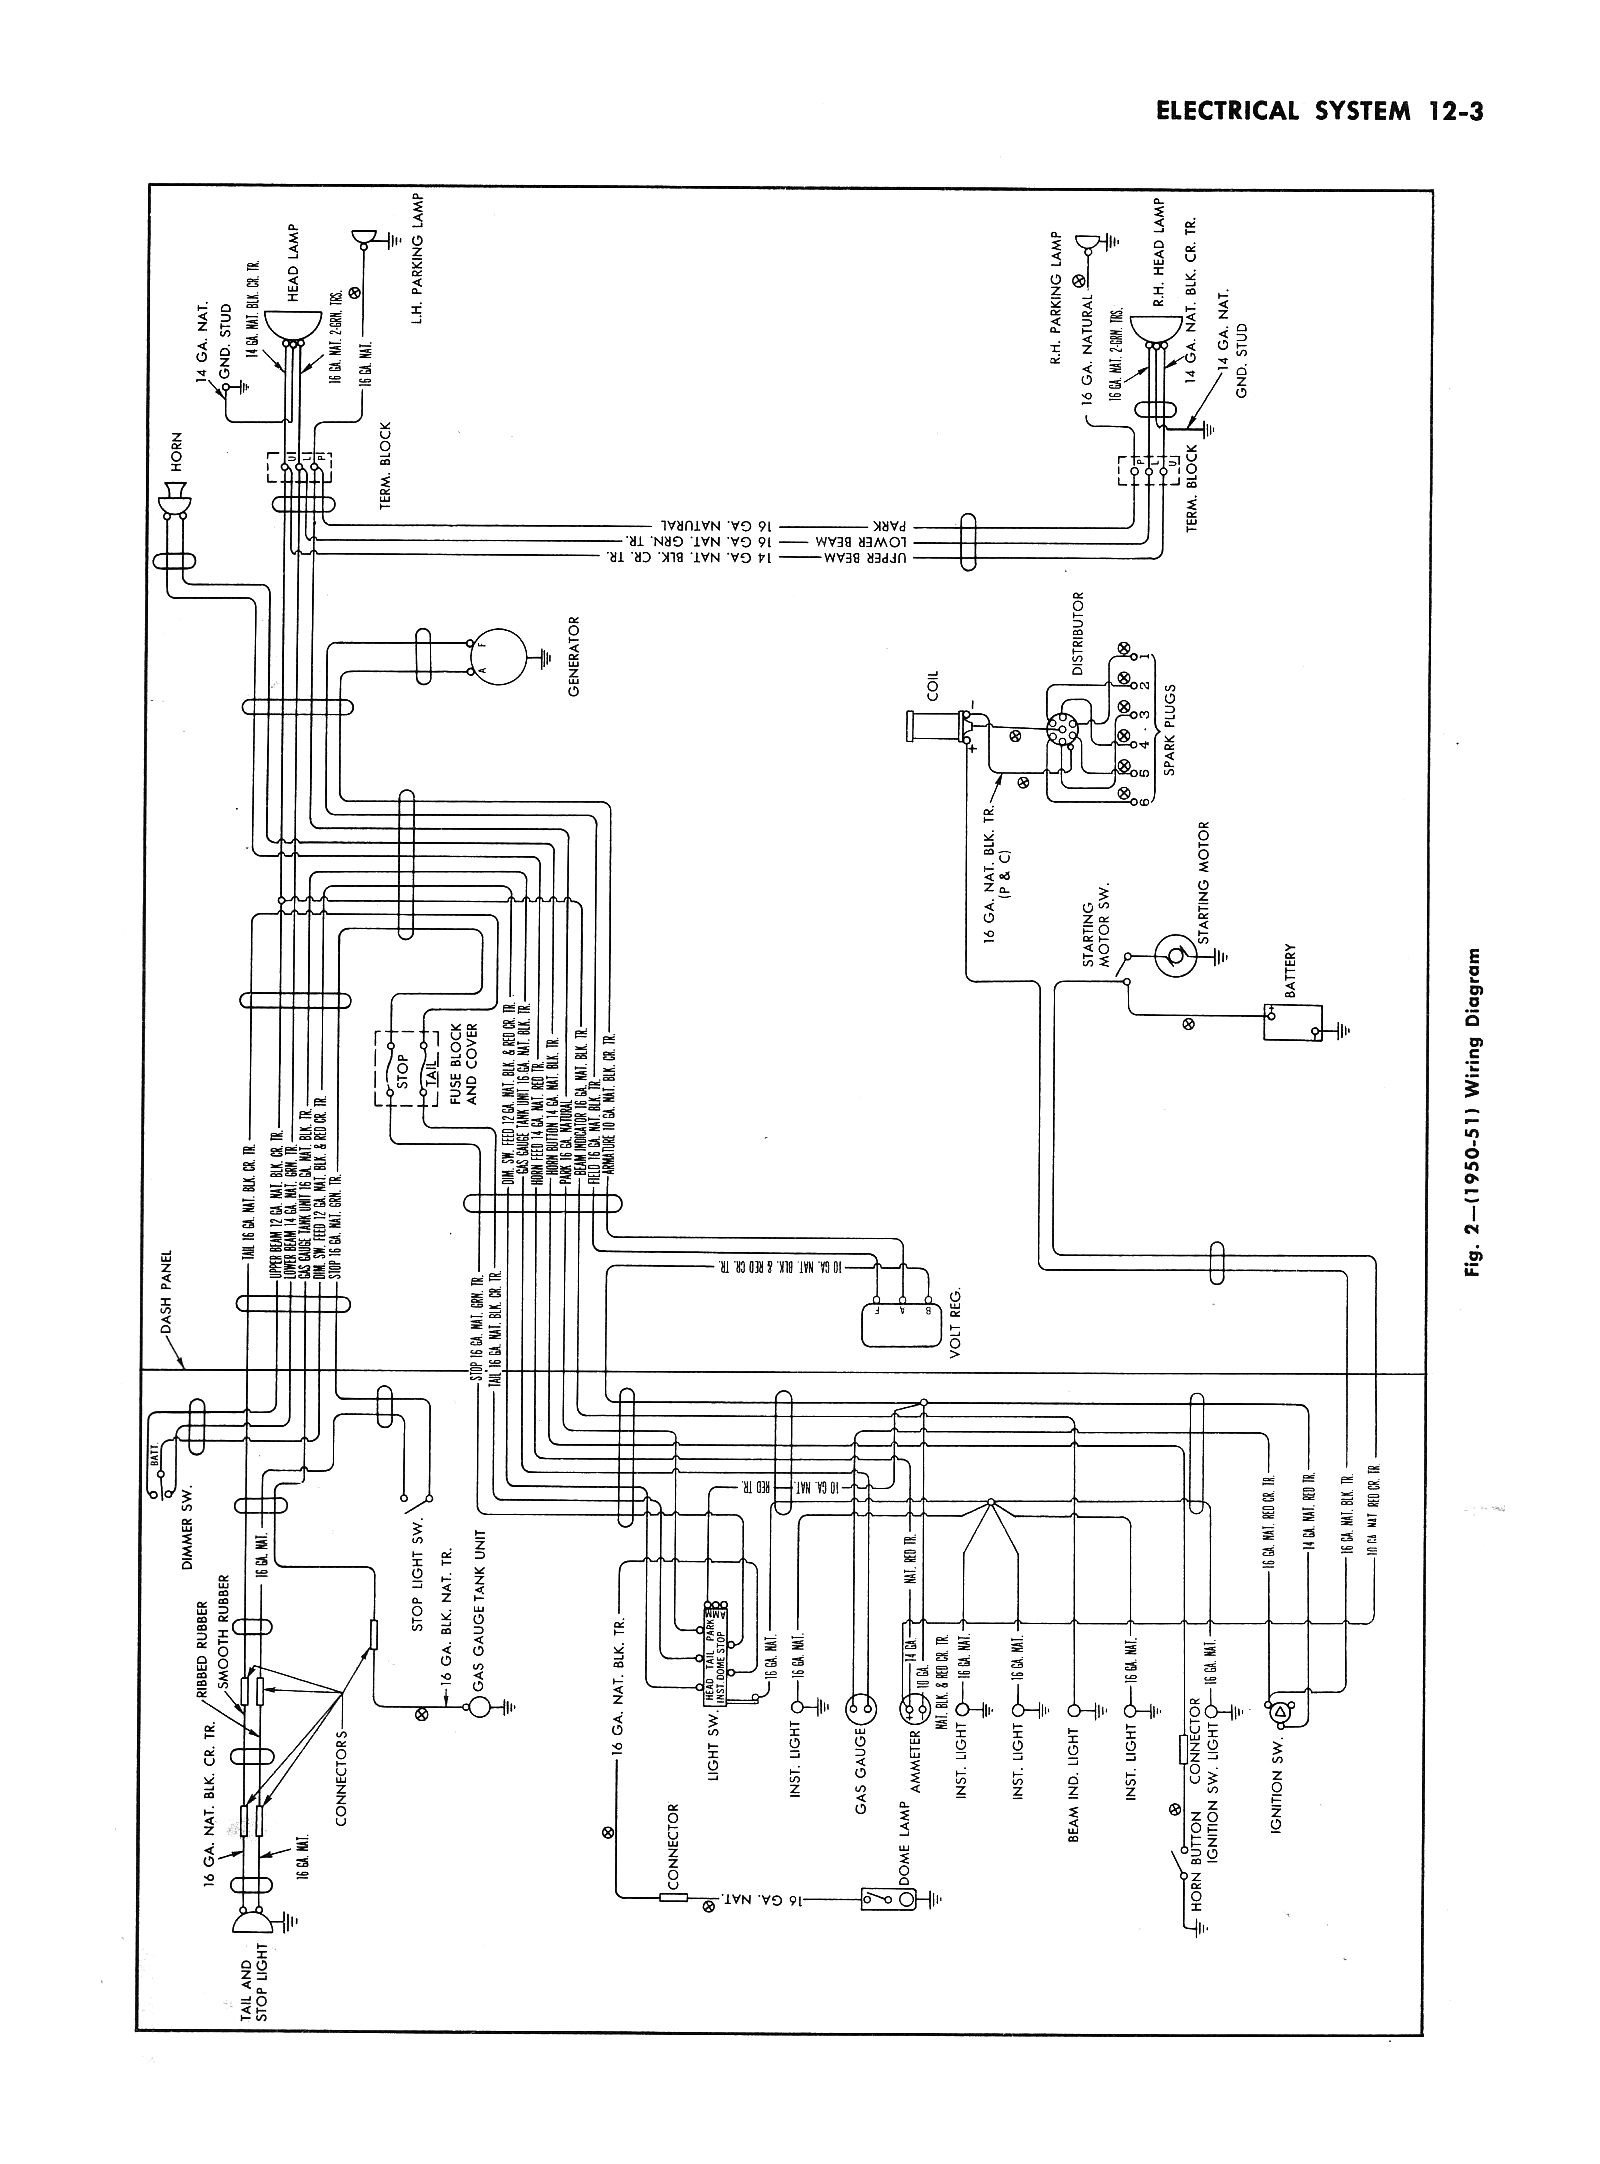 chevy wiring diagrams rh chevy oldcarmanualproject com chevy truck wiring schematics chevy truck wiring diagram download